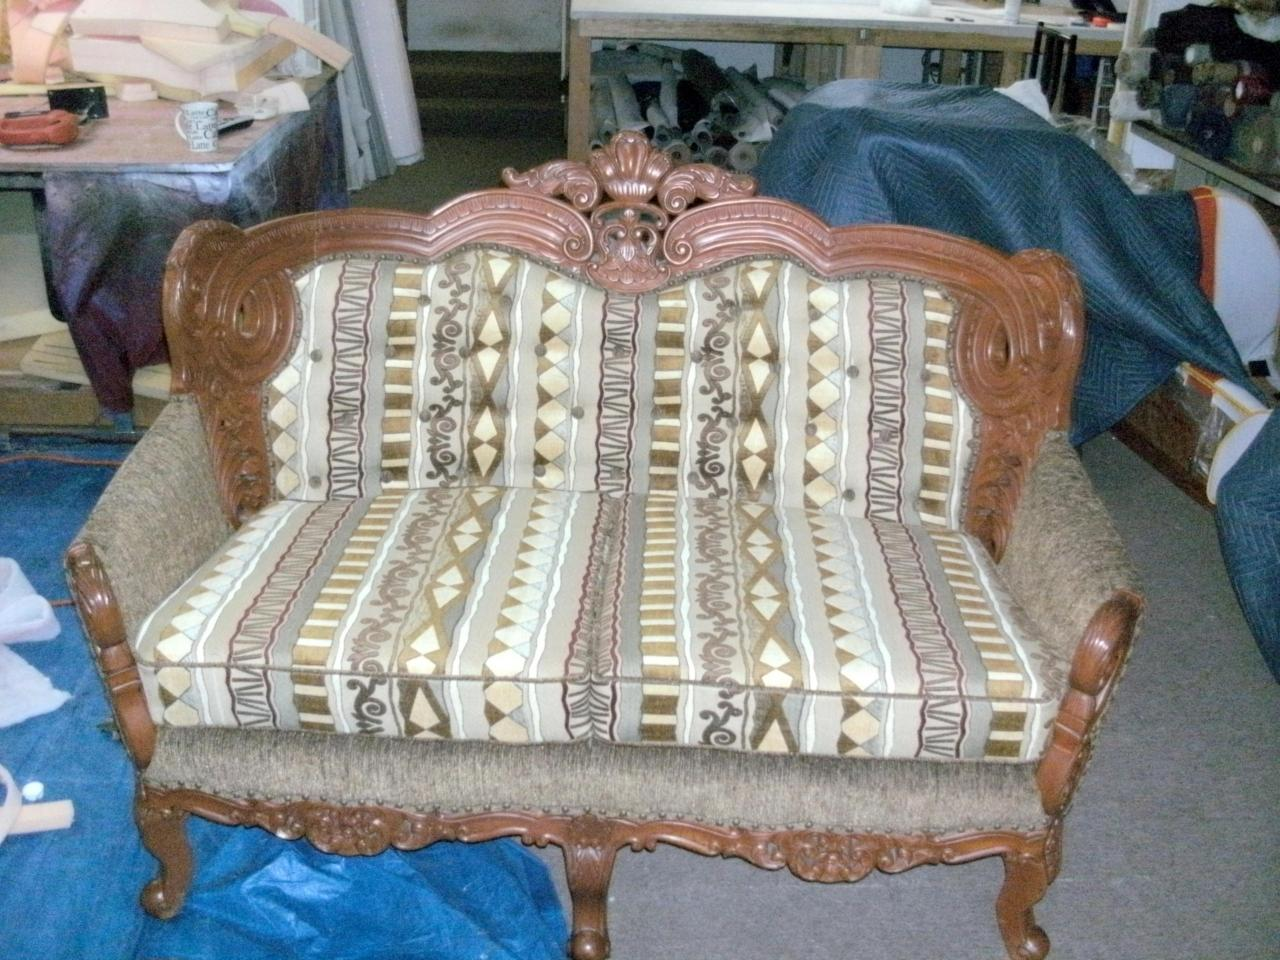 Bobs custom upholstery services furniture for Furniture edmonds wa